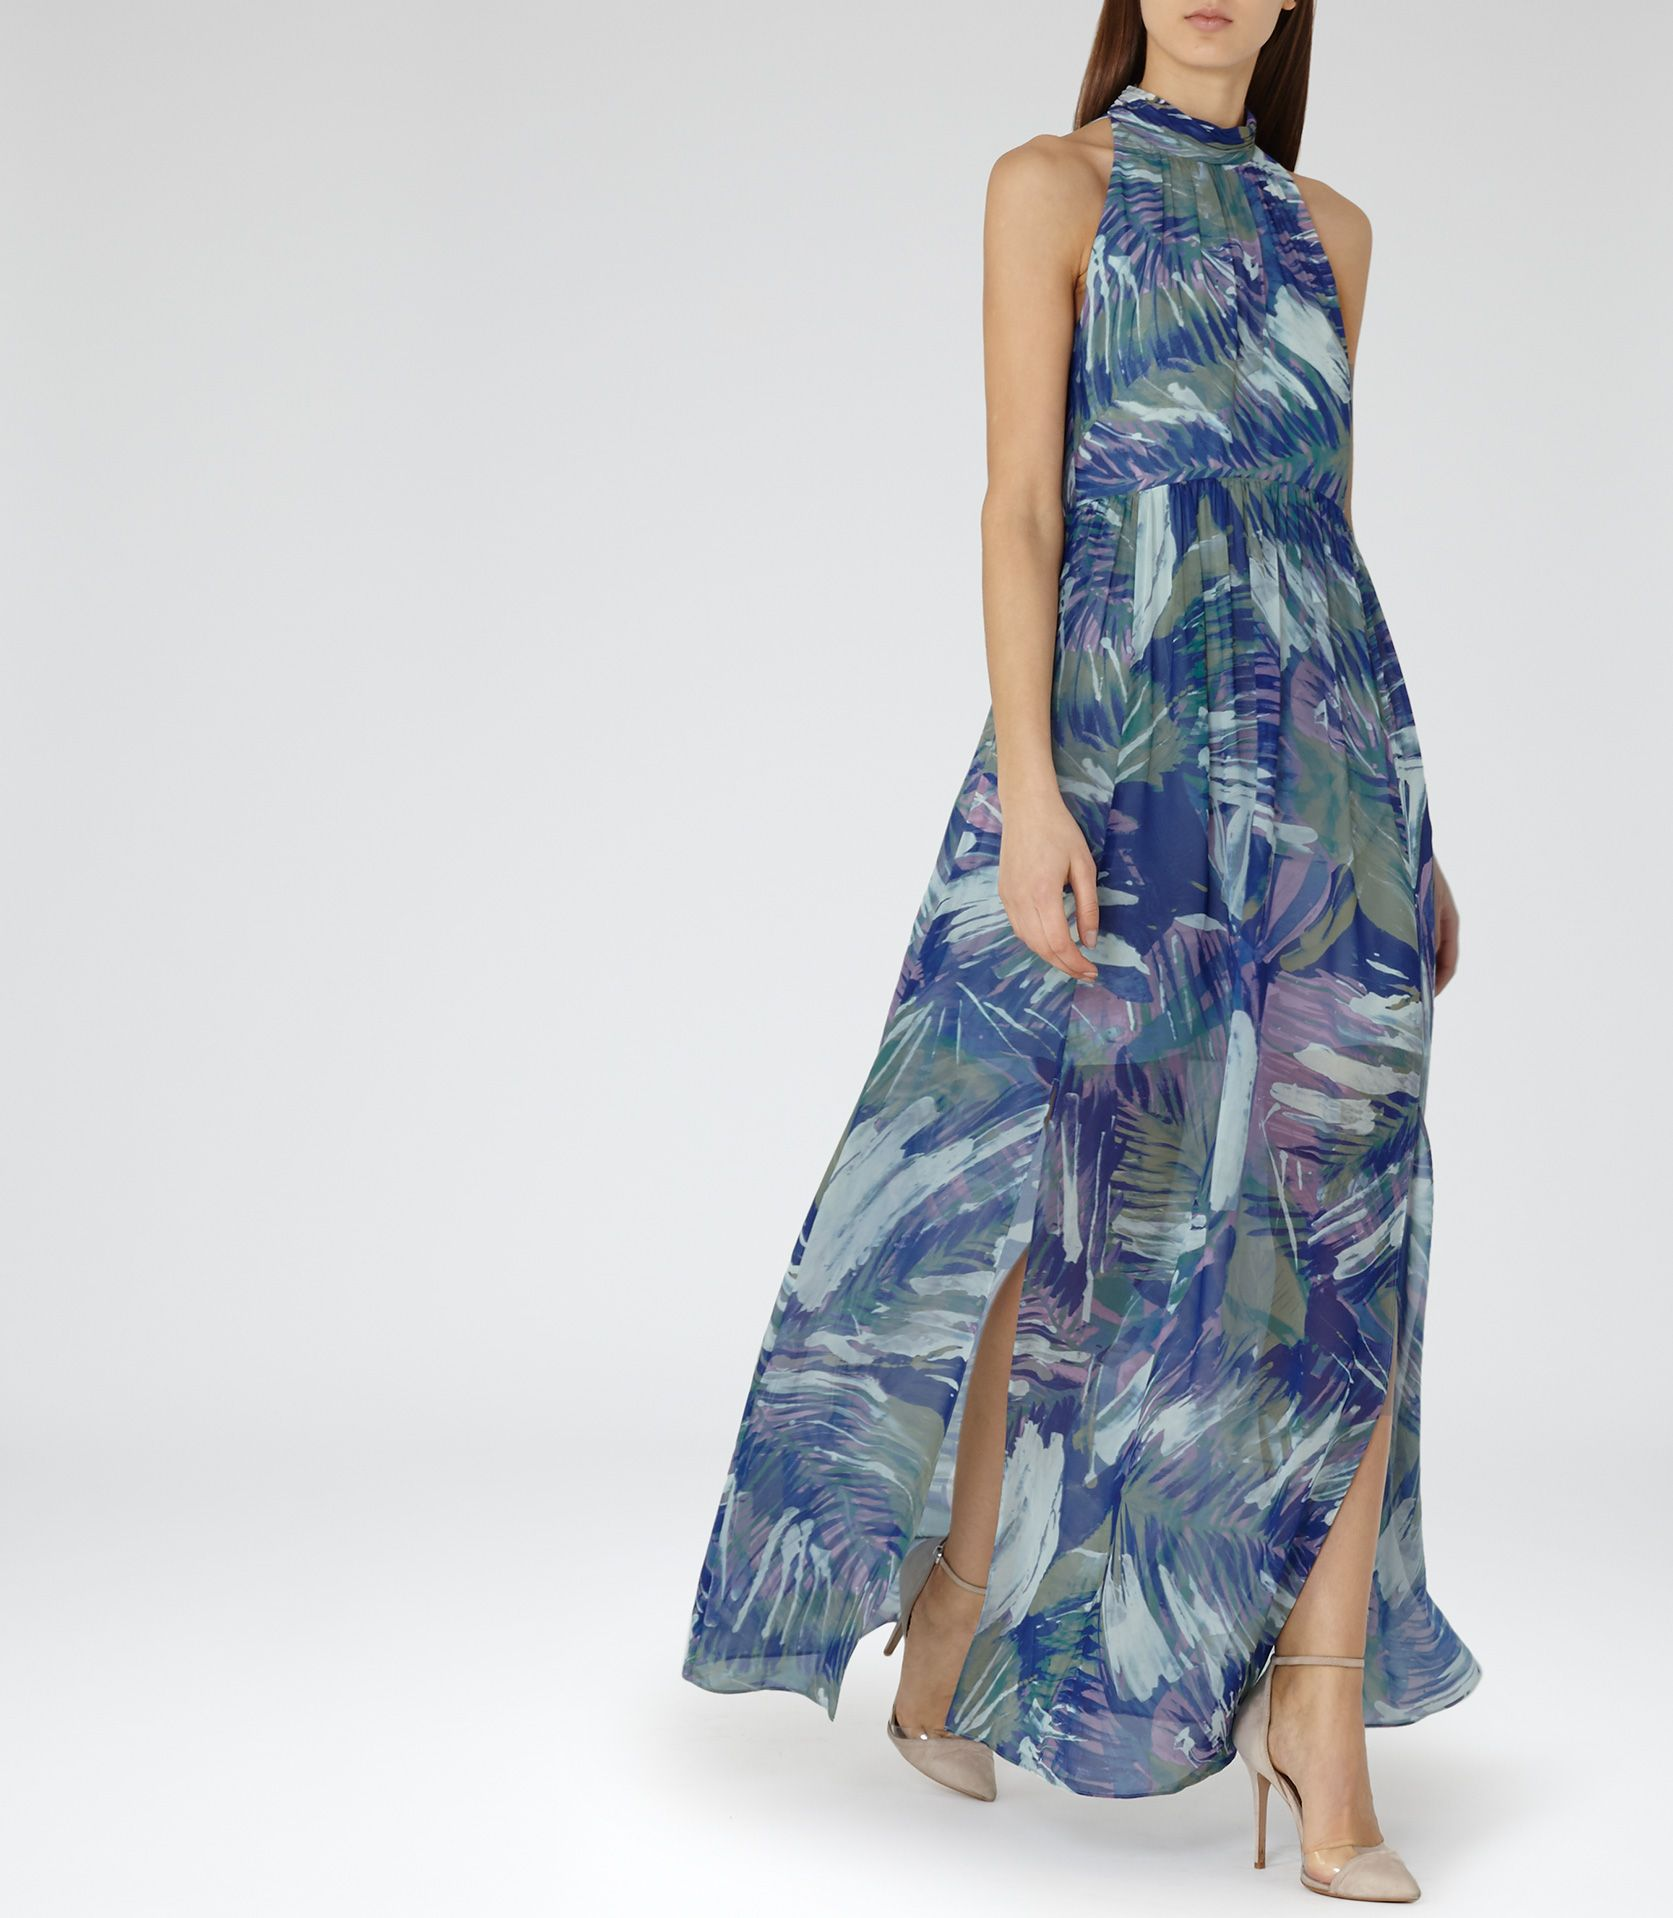 Reiss frances maxi dress